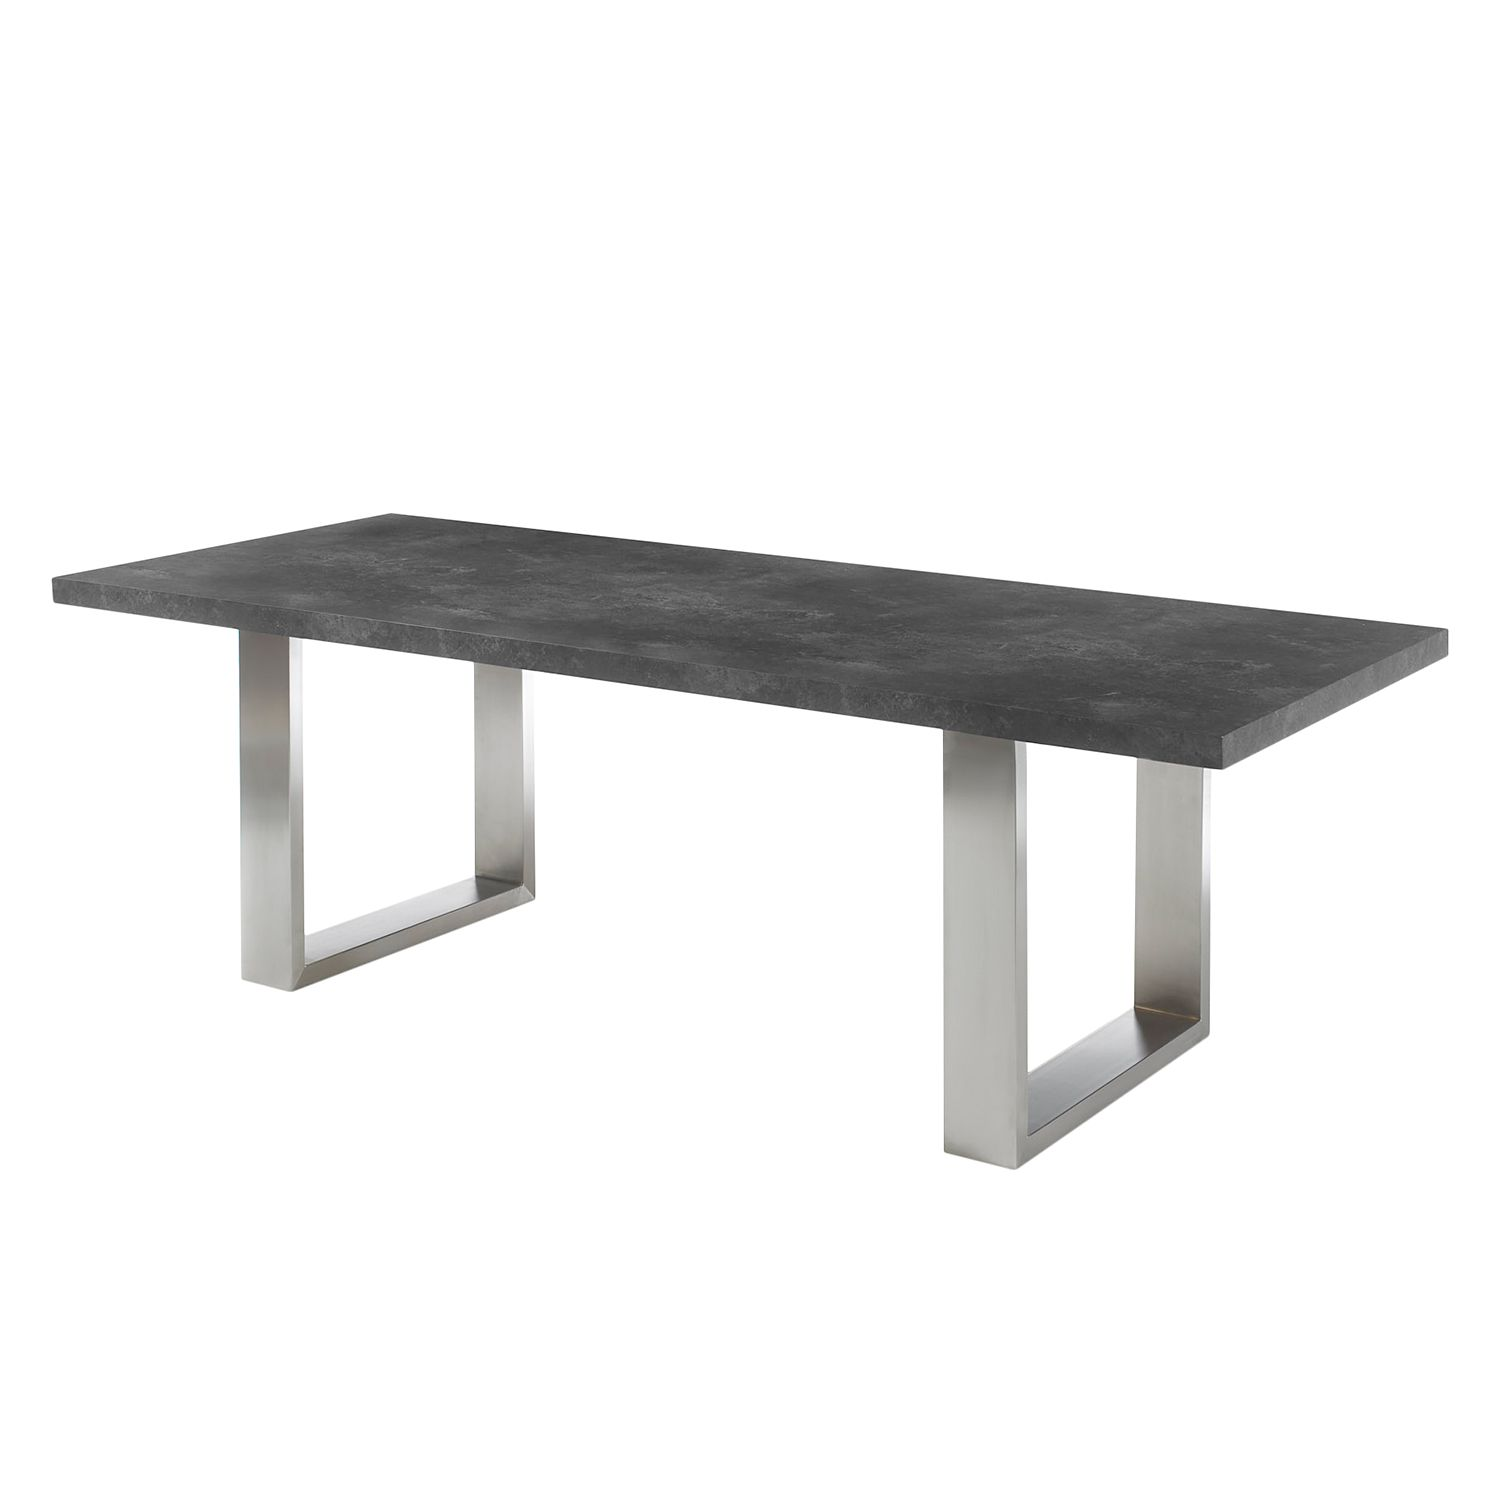 Table à manger Boonton - Anthracite - 180 x 100 cm, Fredriks